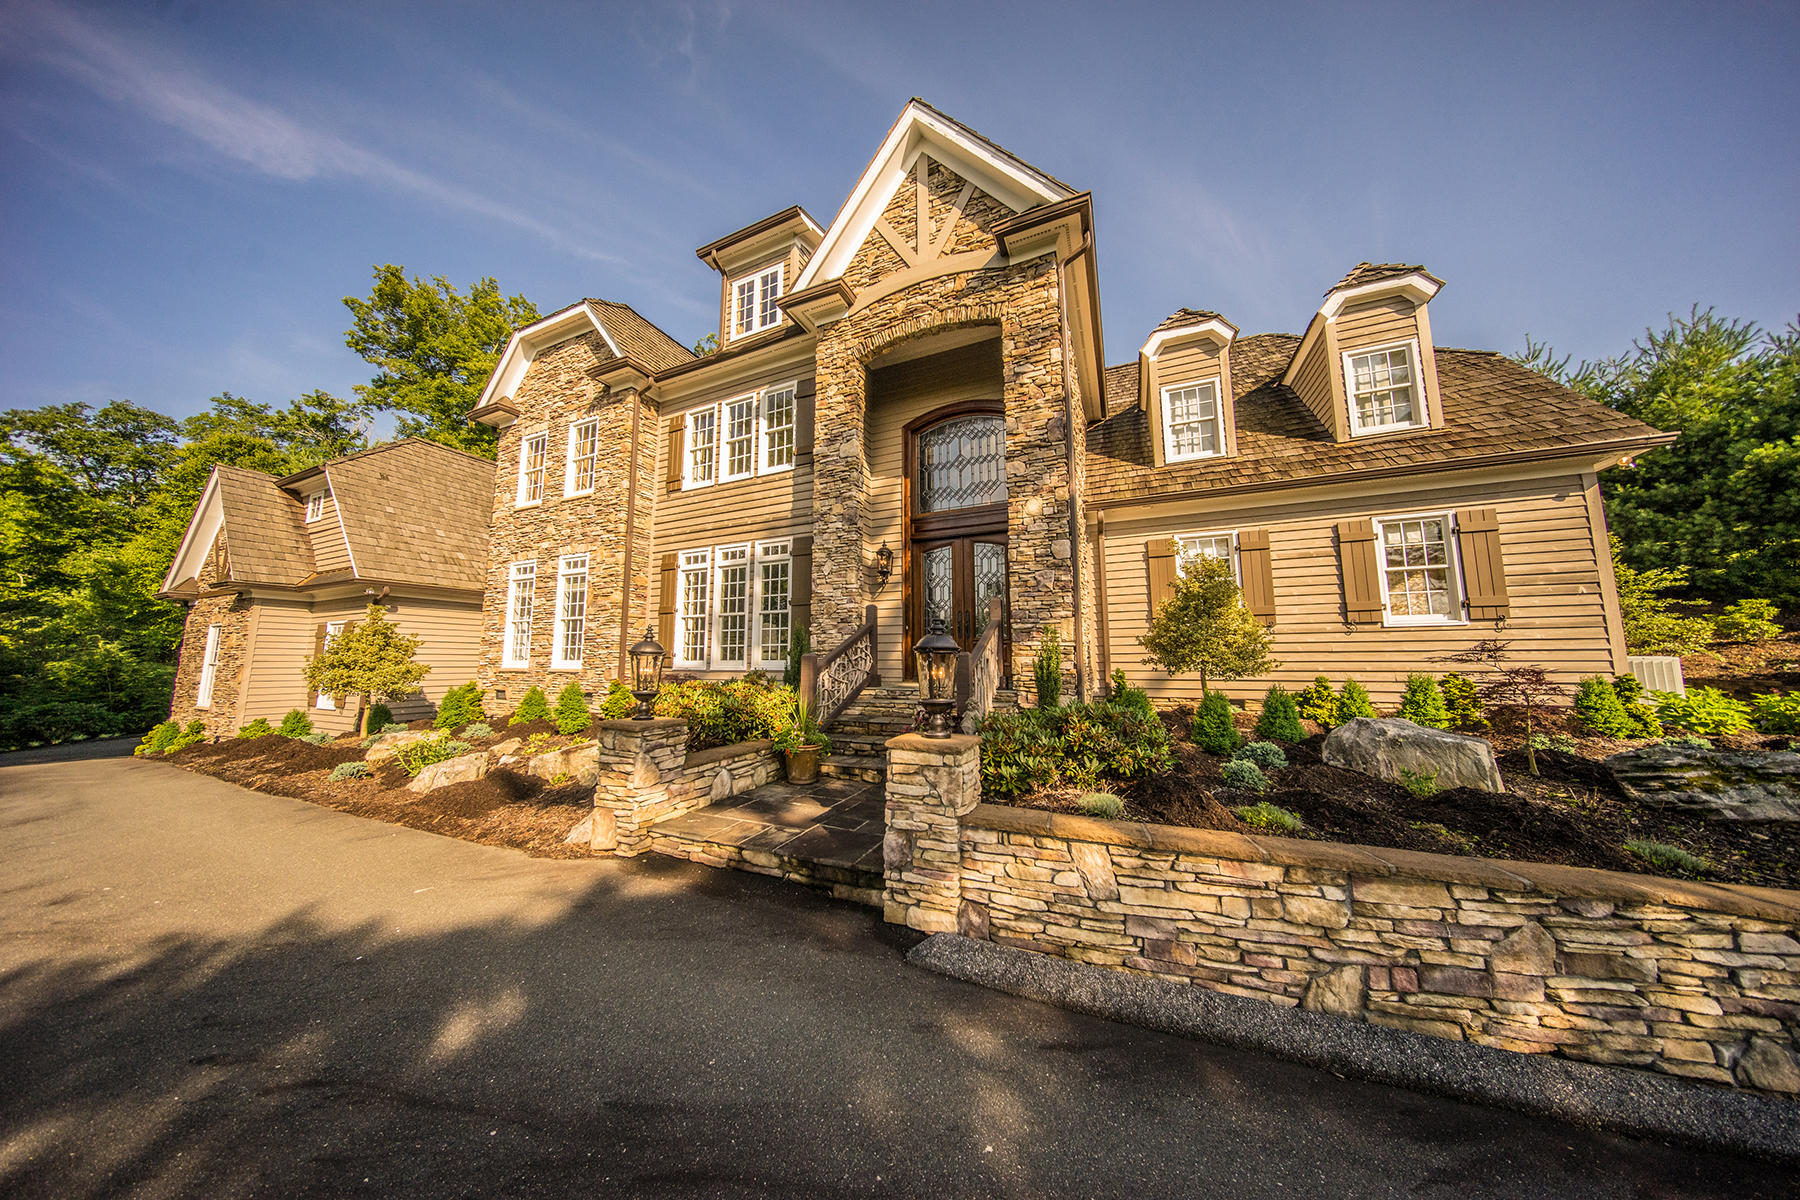 Single Family Home for Sale at BLOWING ROCK - TIMBER CREEK 303 Timber Creek Drive Blowing Rock, North Carolina, 28605 United States